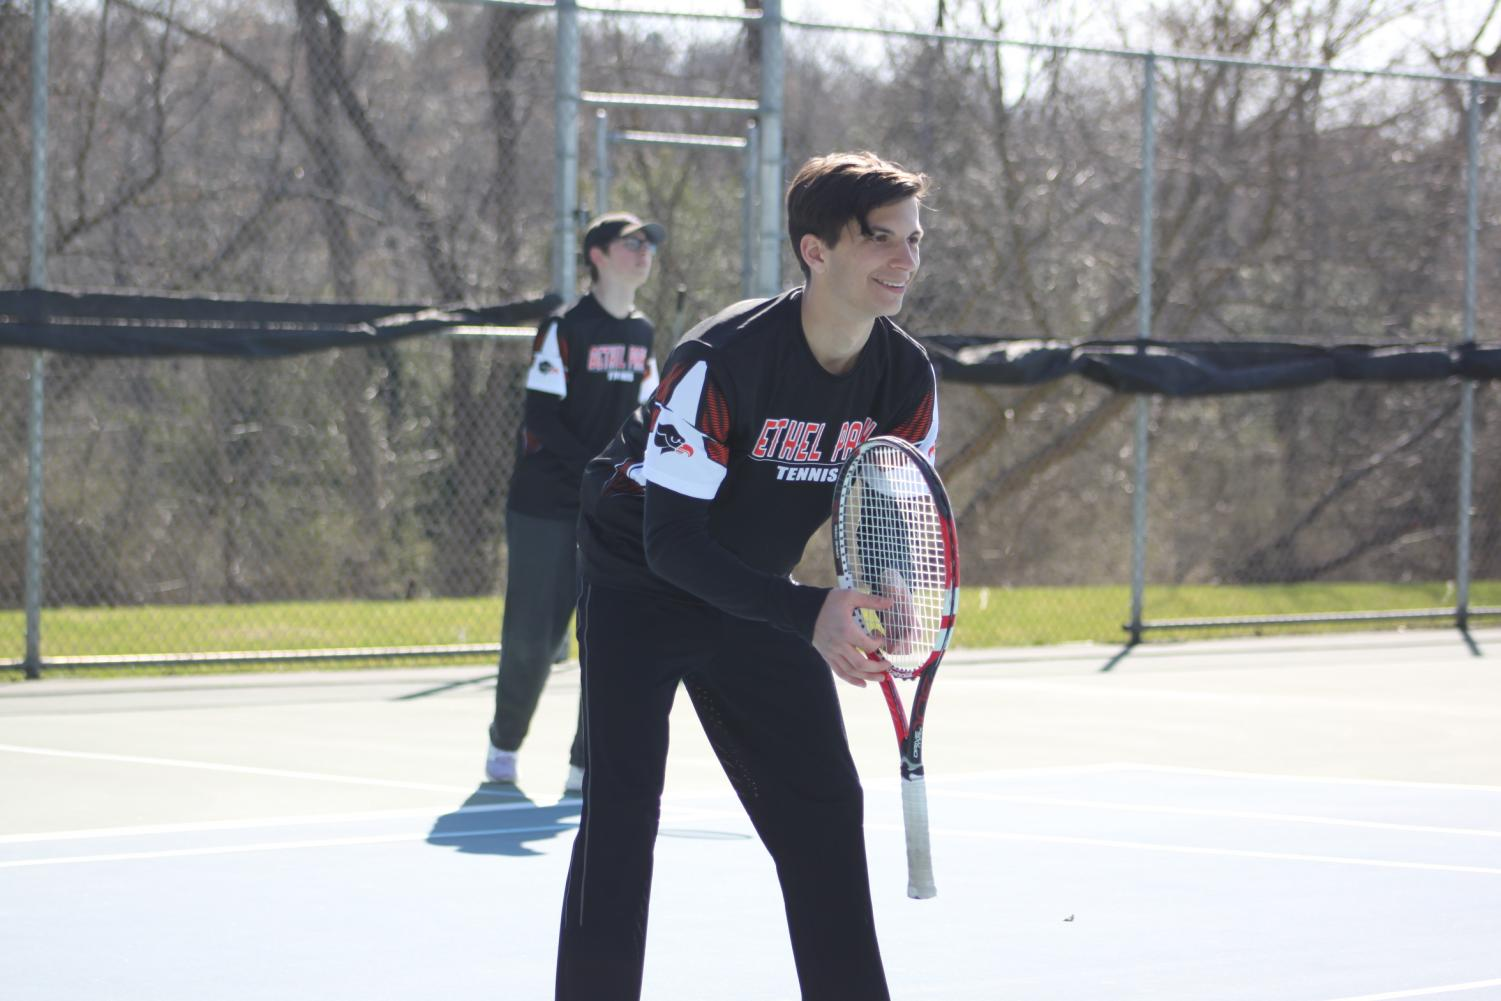 Andrew+getting+ready+to+volley